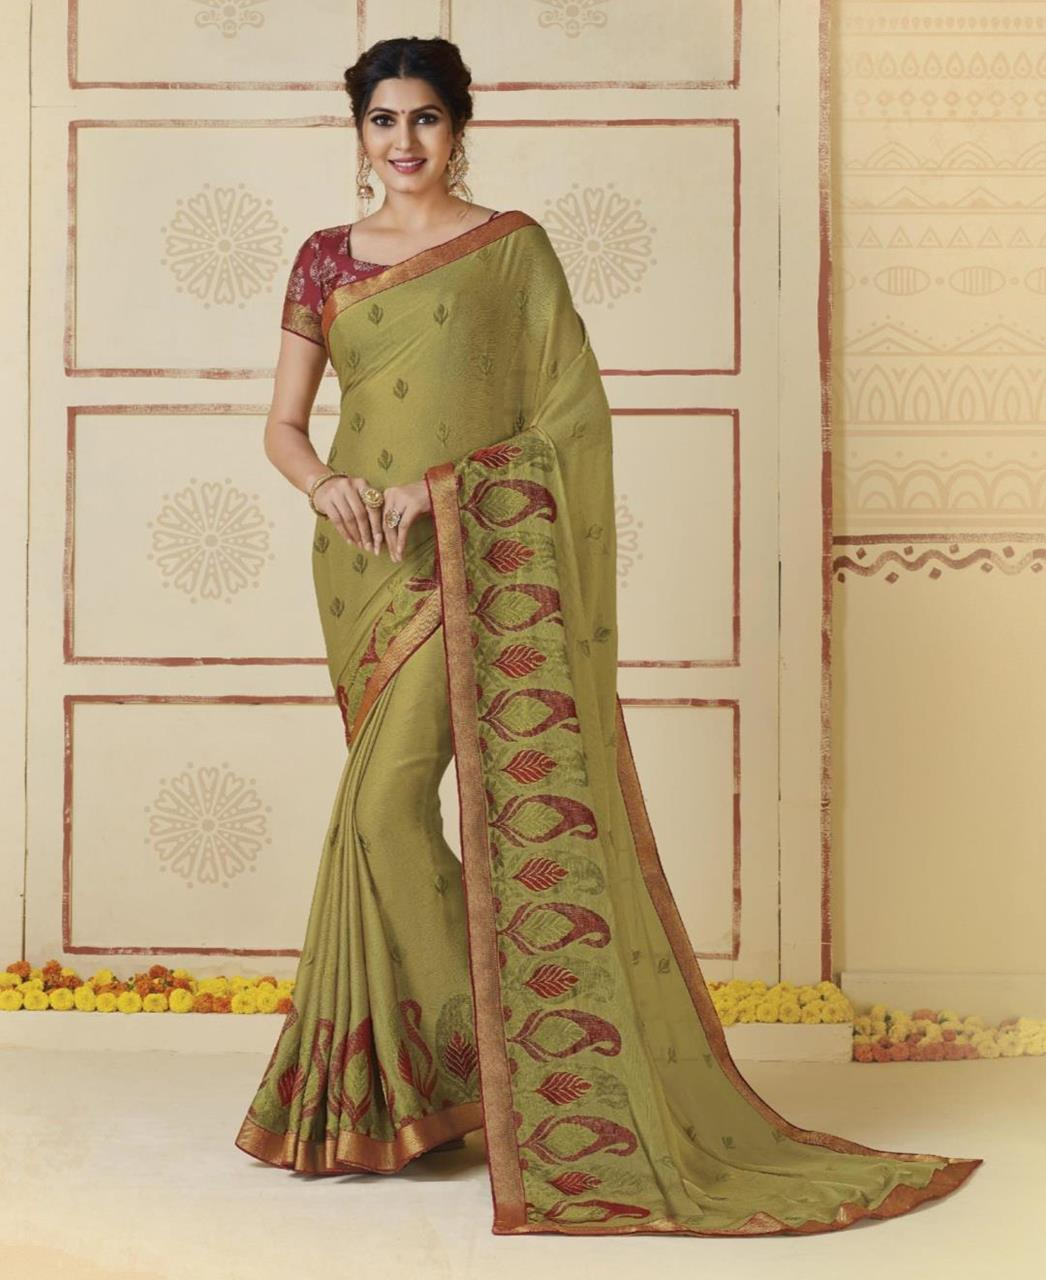 Embroidered Chiffon Saree in Mehndi Green